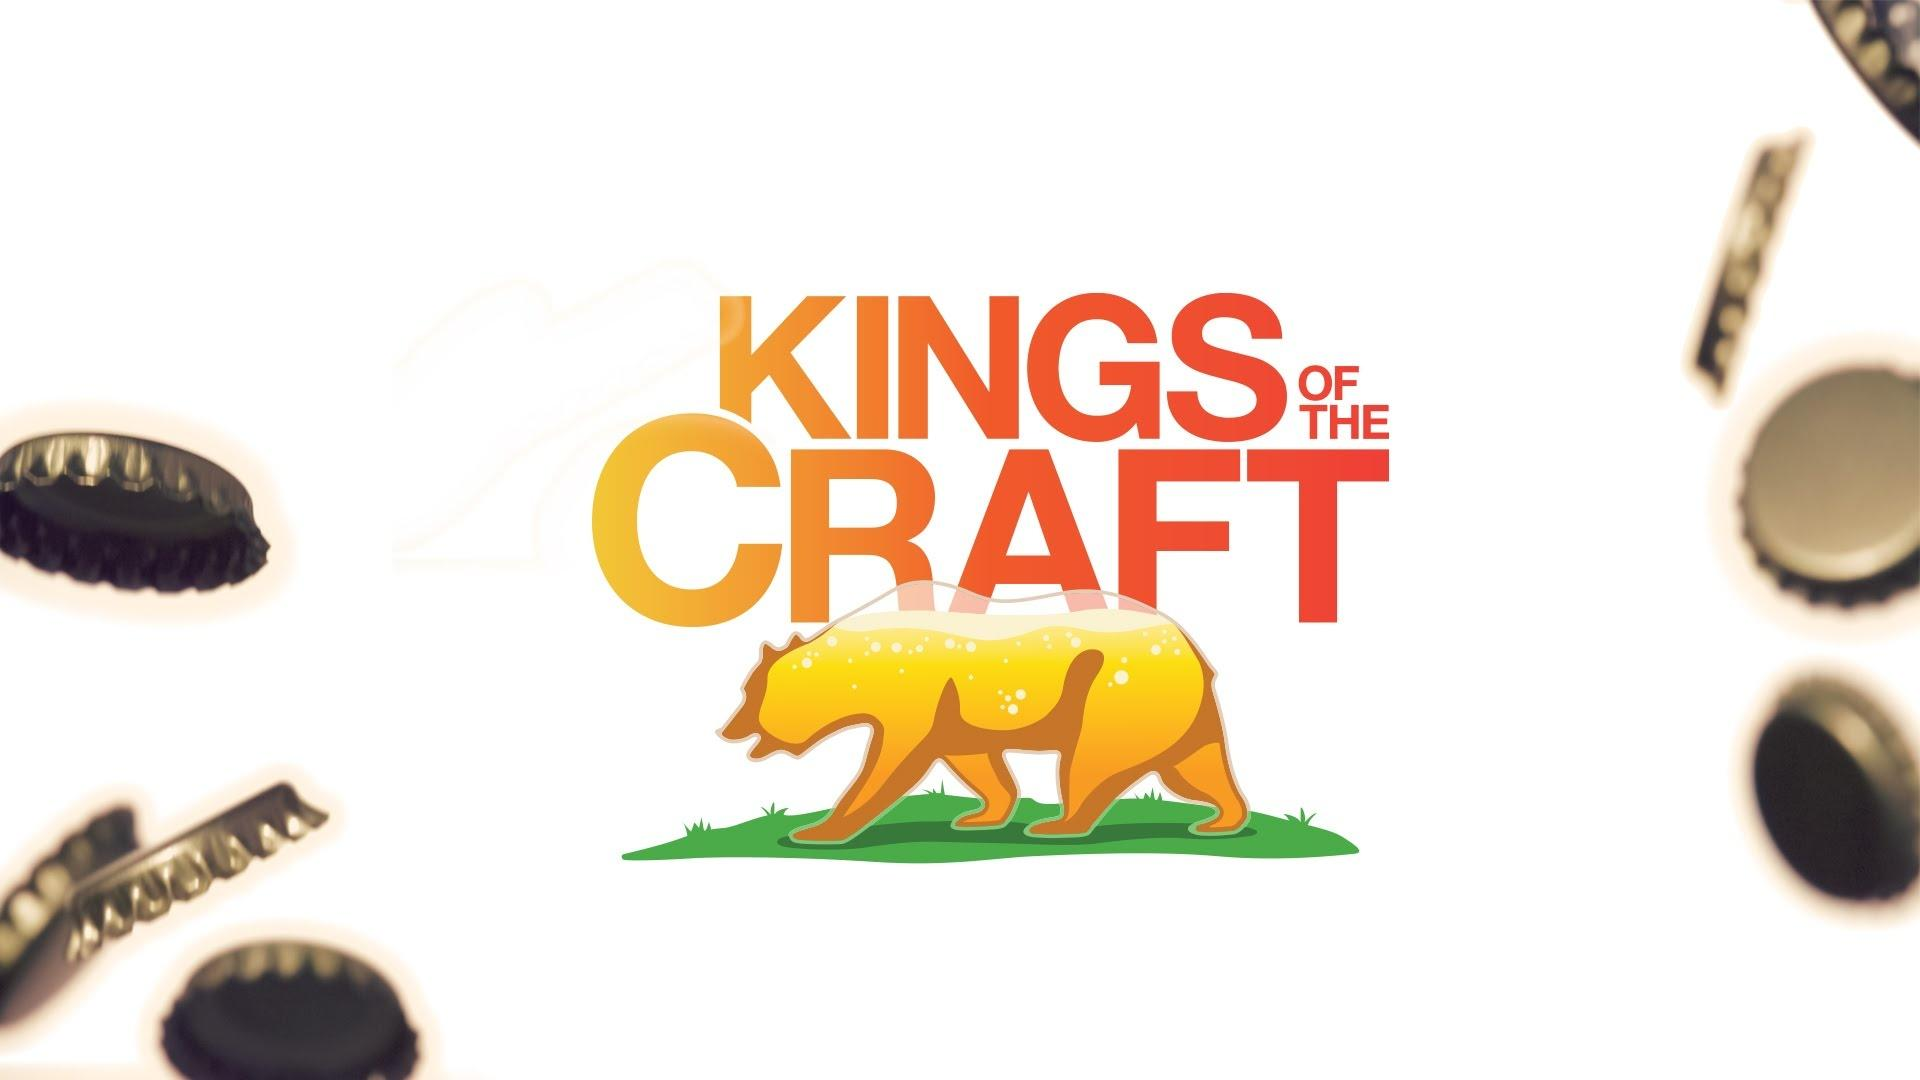 Kings of the craft kings of the craft pbs for Craft kings wv menu